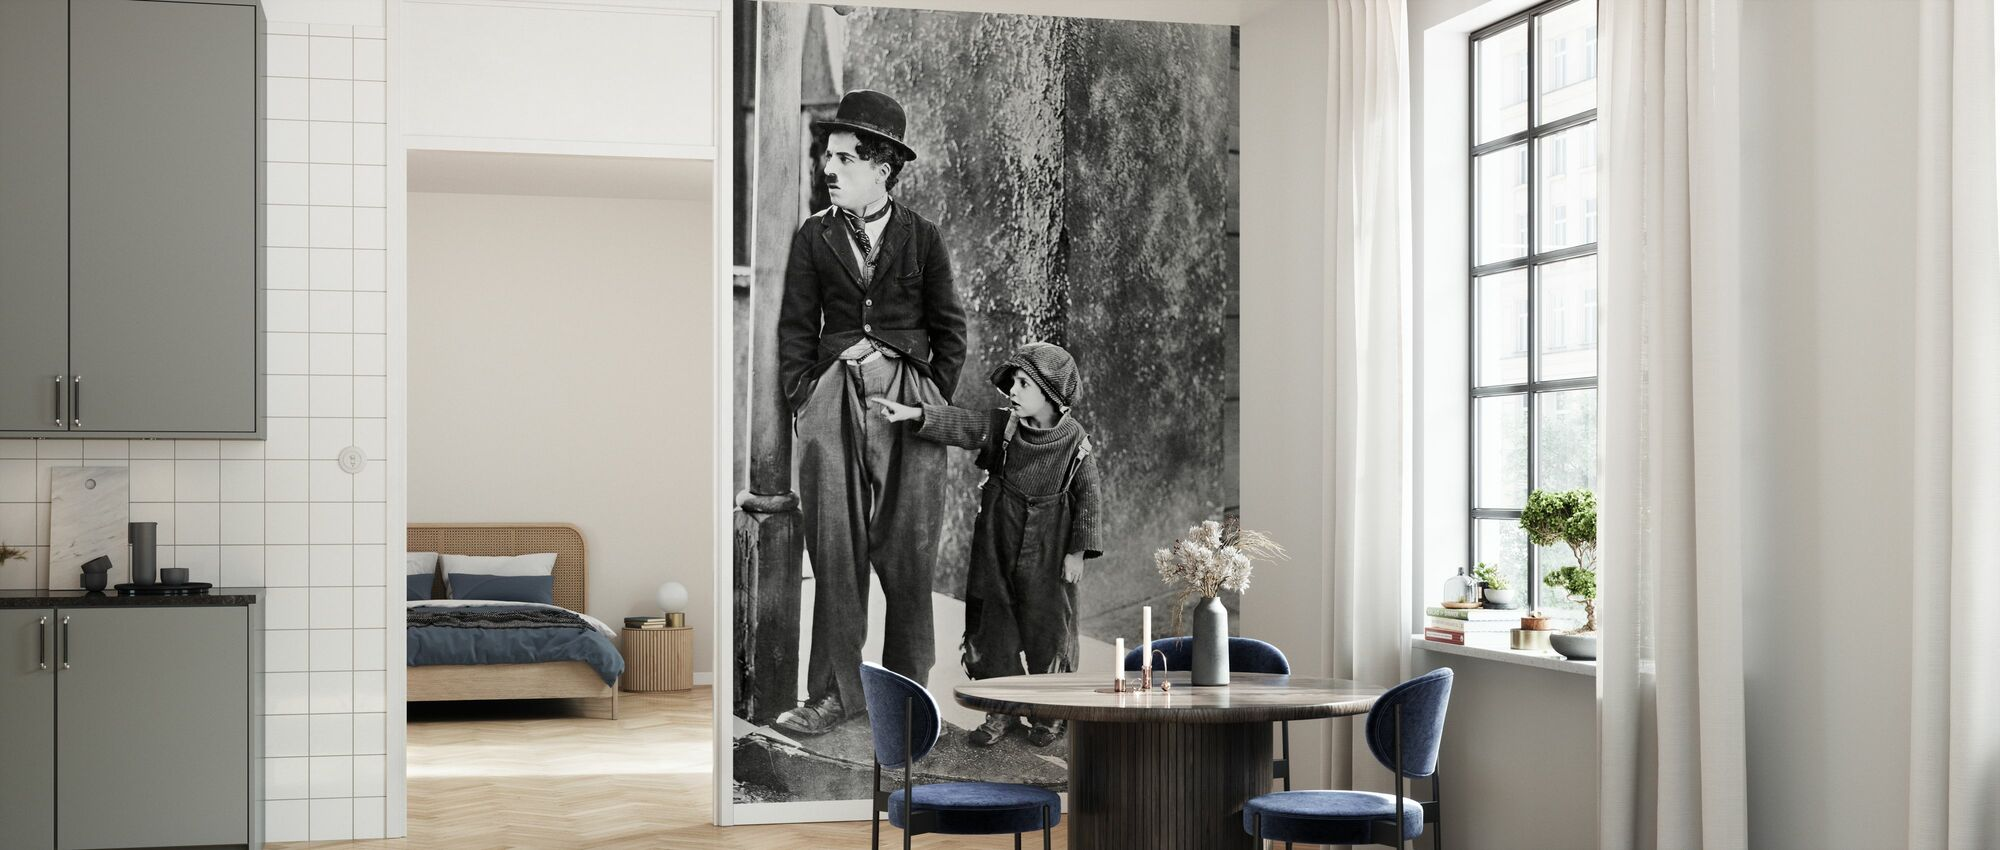 Charlie Chaplin and Jackie Coogan in the Kid - Wallpaper - Kitchen